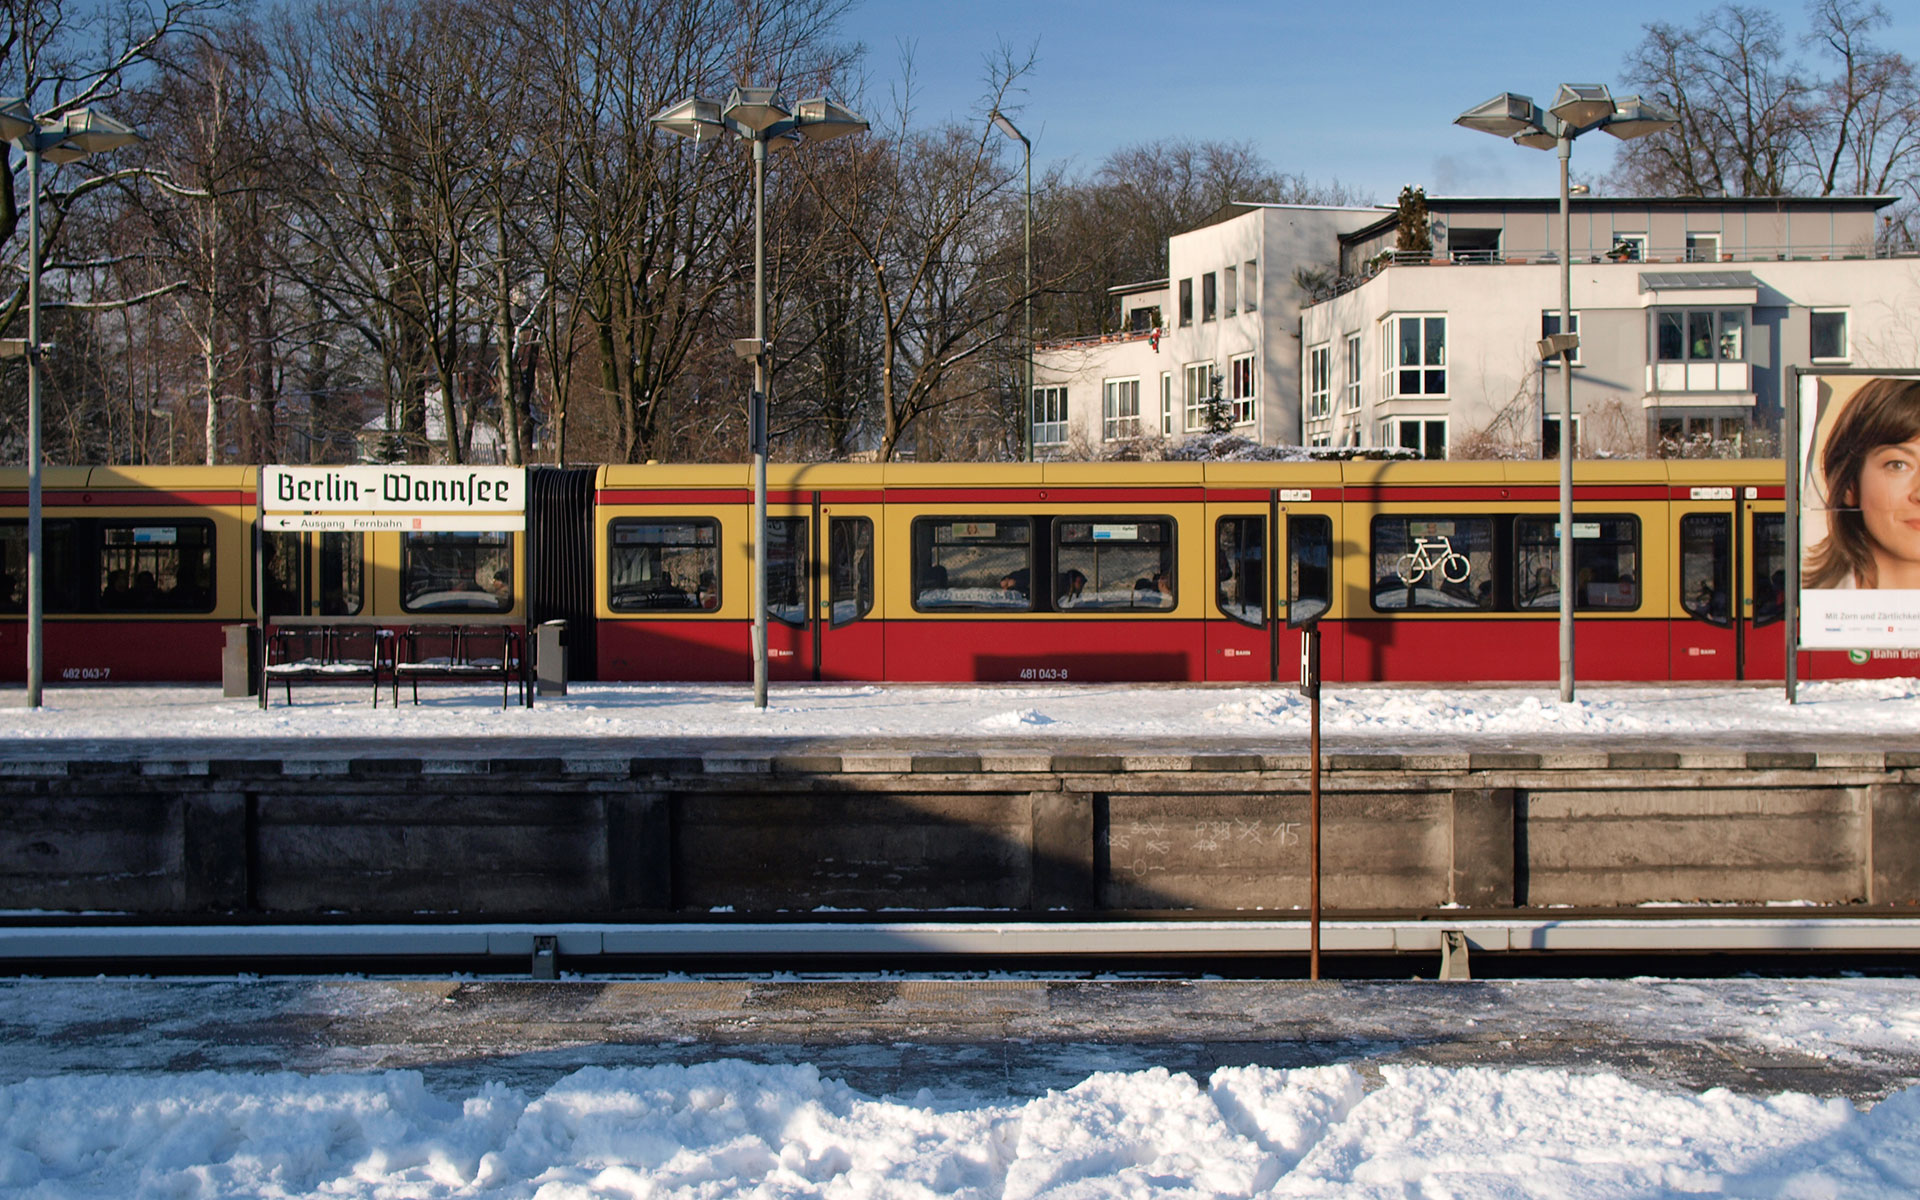 Heading out to the edges of Berlin: an S-Bahn train arriving at Wannsee station in the city's leafy south-western suburbs (photo © hidden europe).